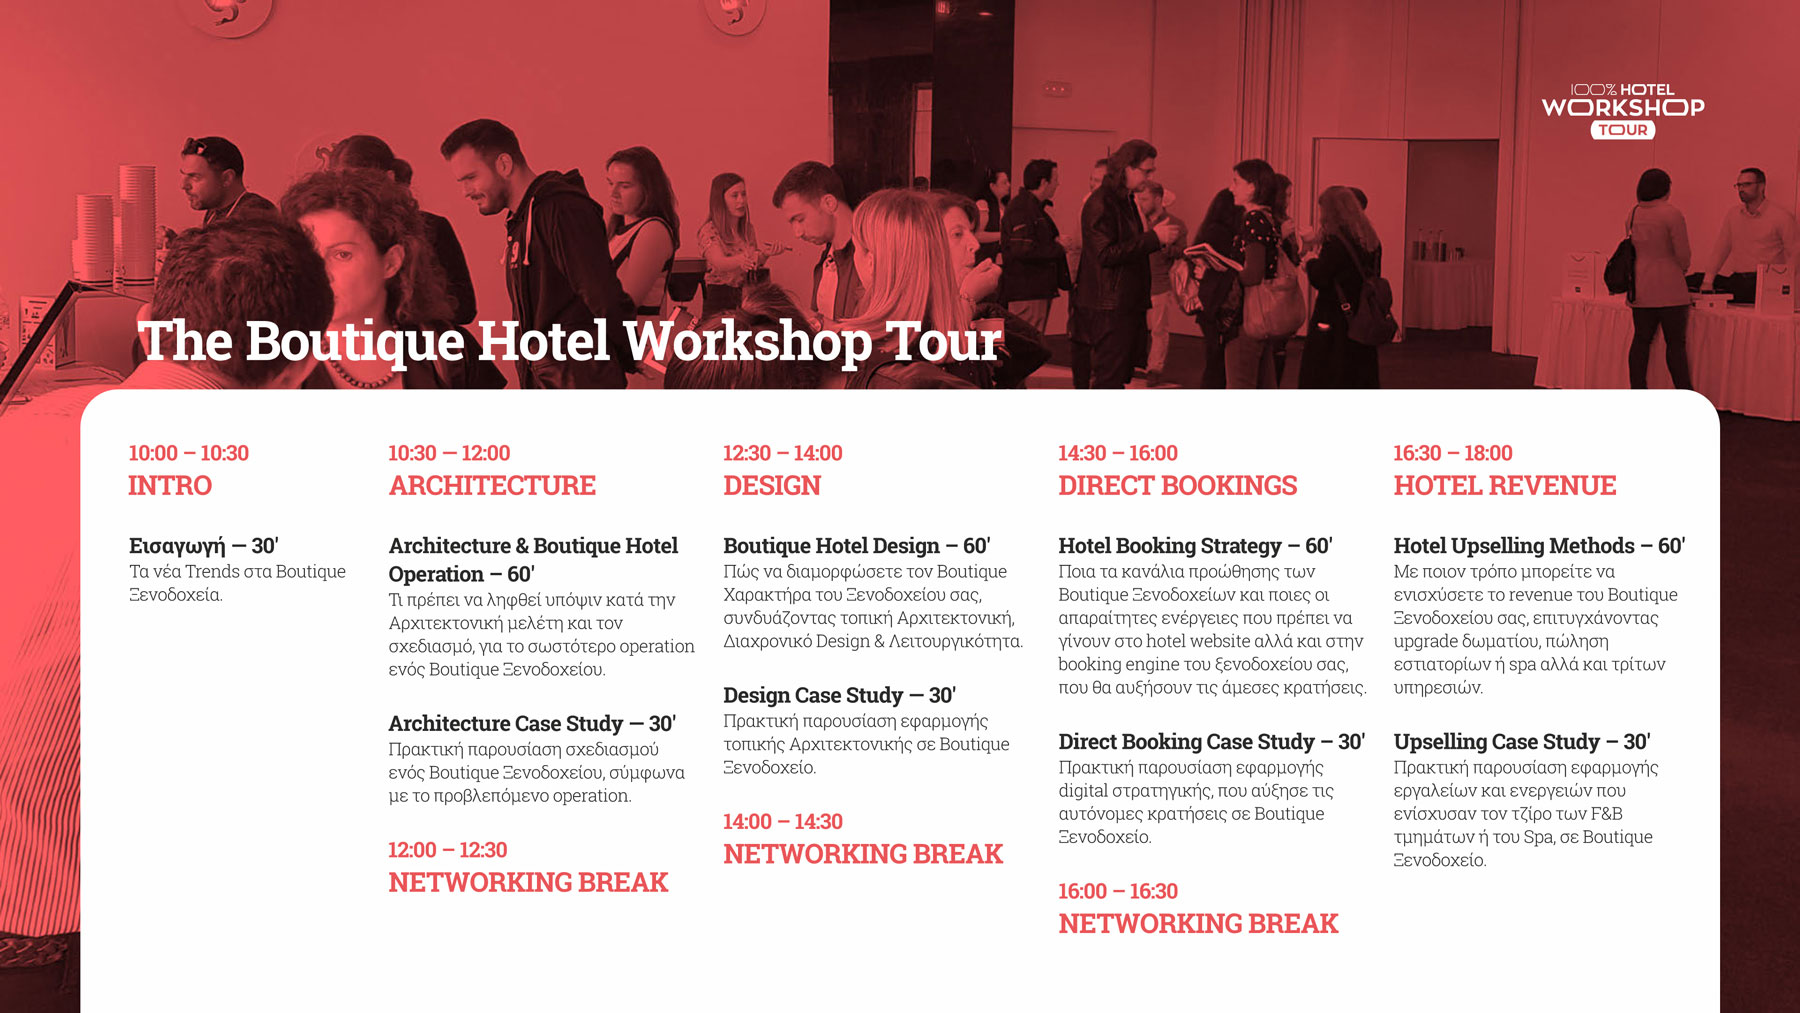 The Boutique Hotel Workshop Tour 2019 sessions